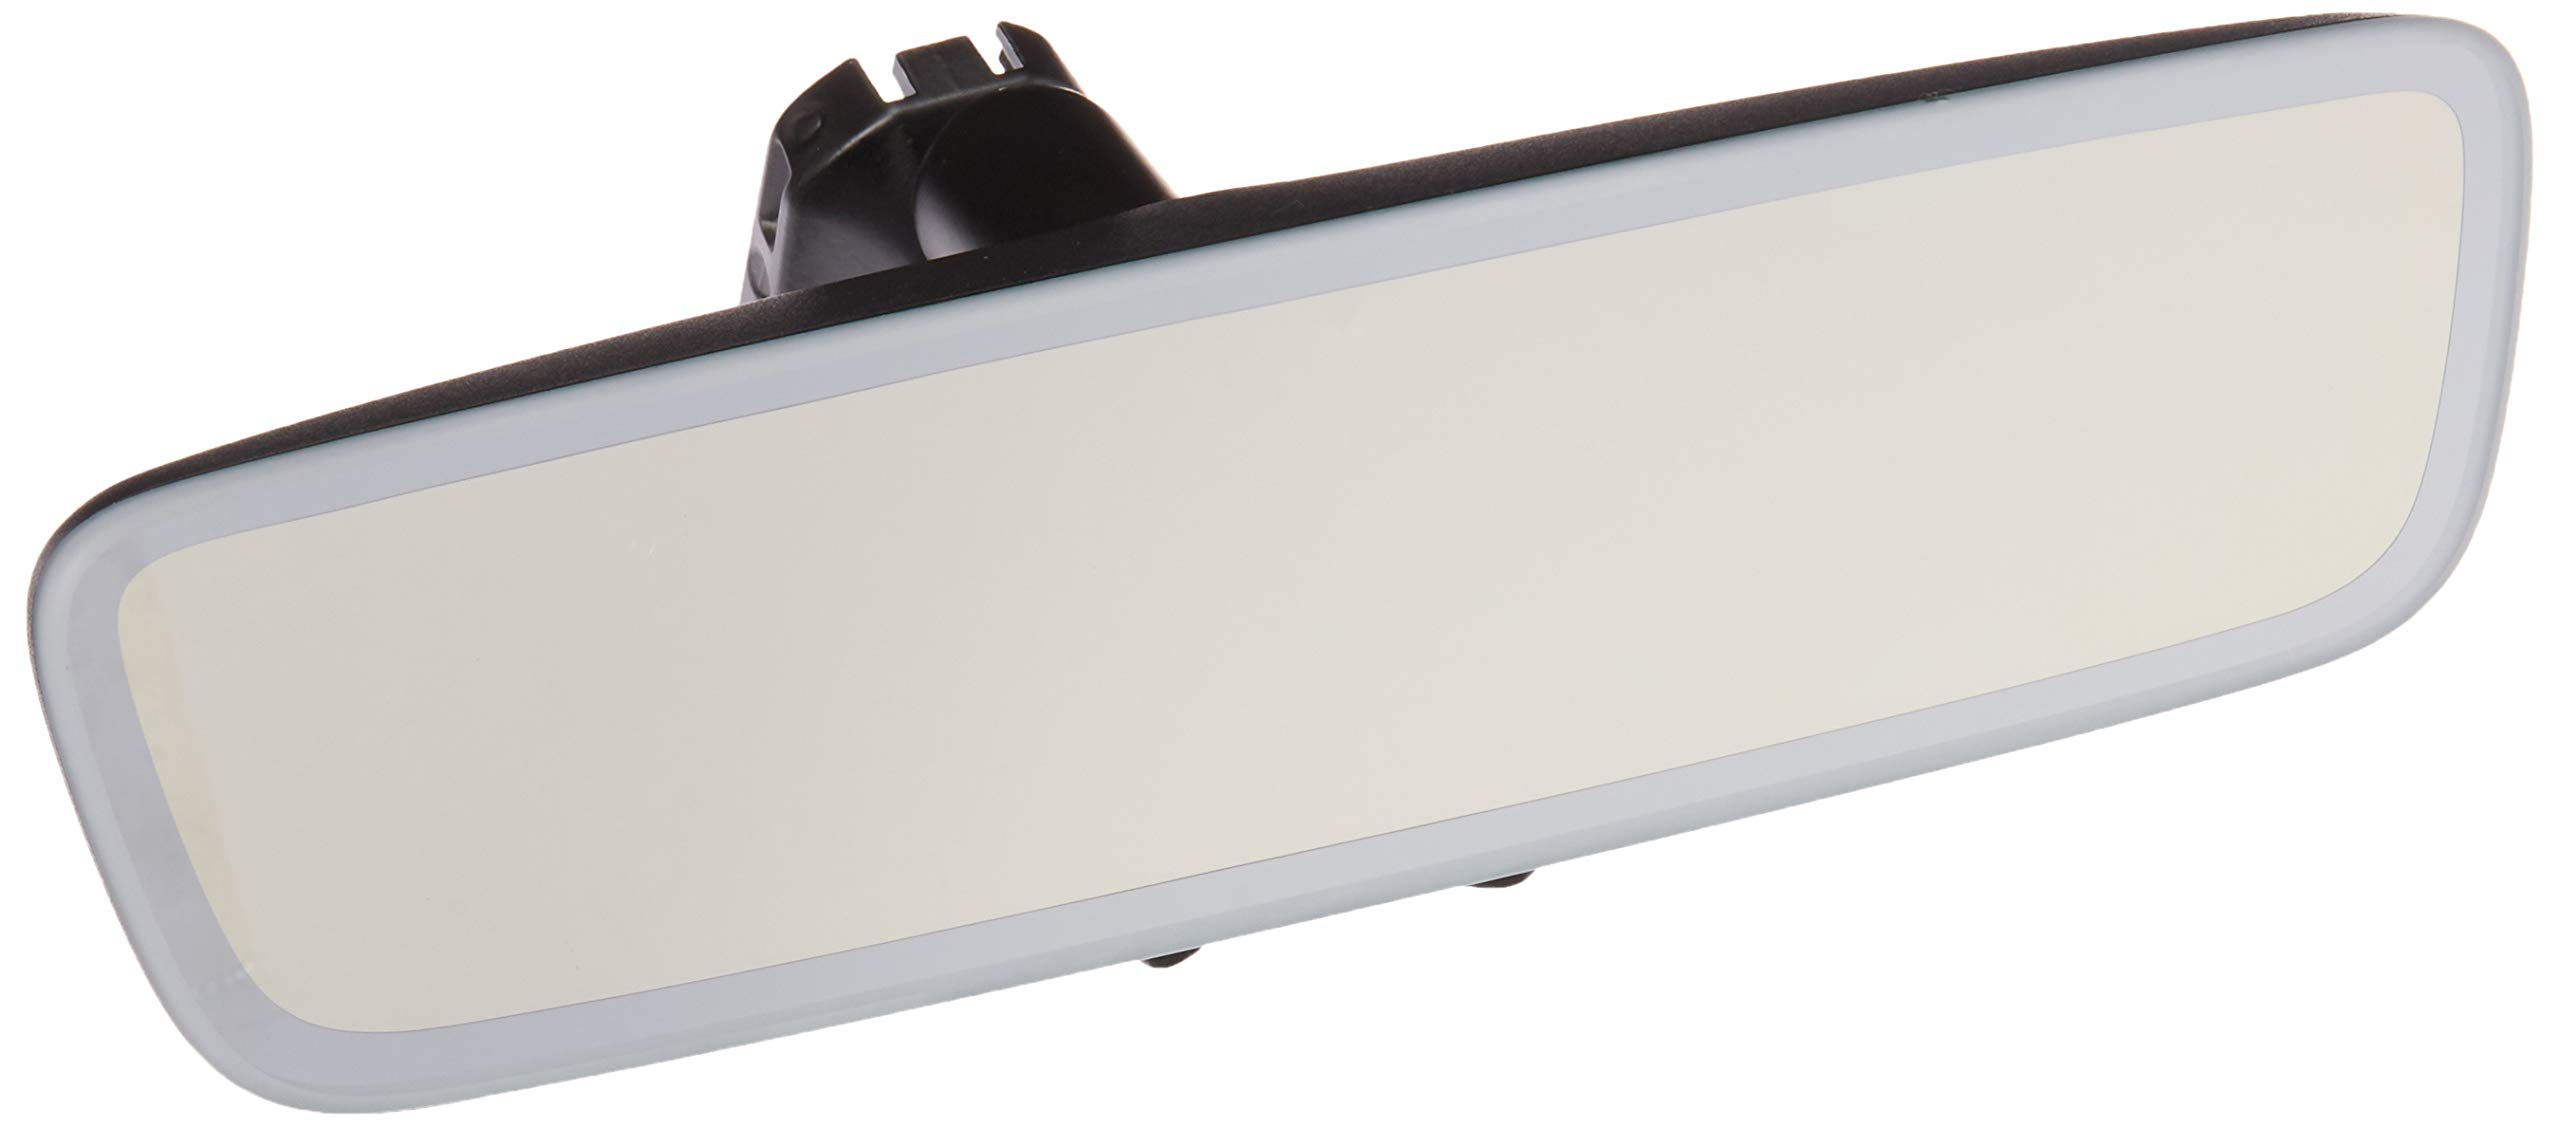 Nissan T99L1-5ZW0A Frameless Auto-Dimming Rear View Mirror with UGDO